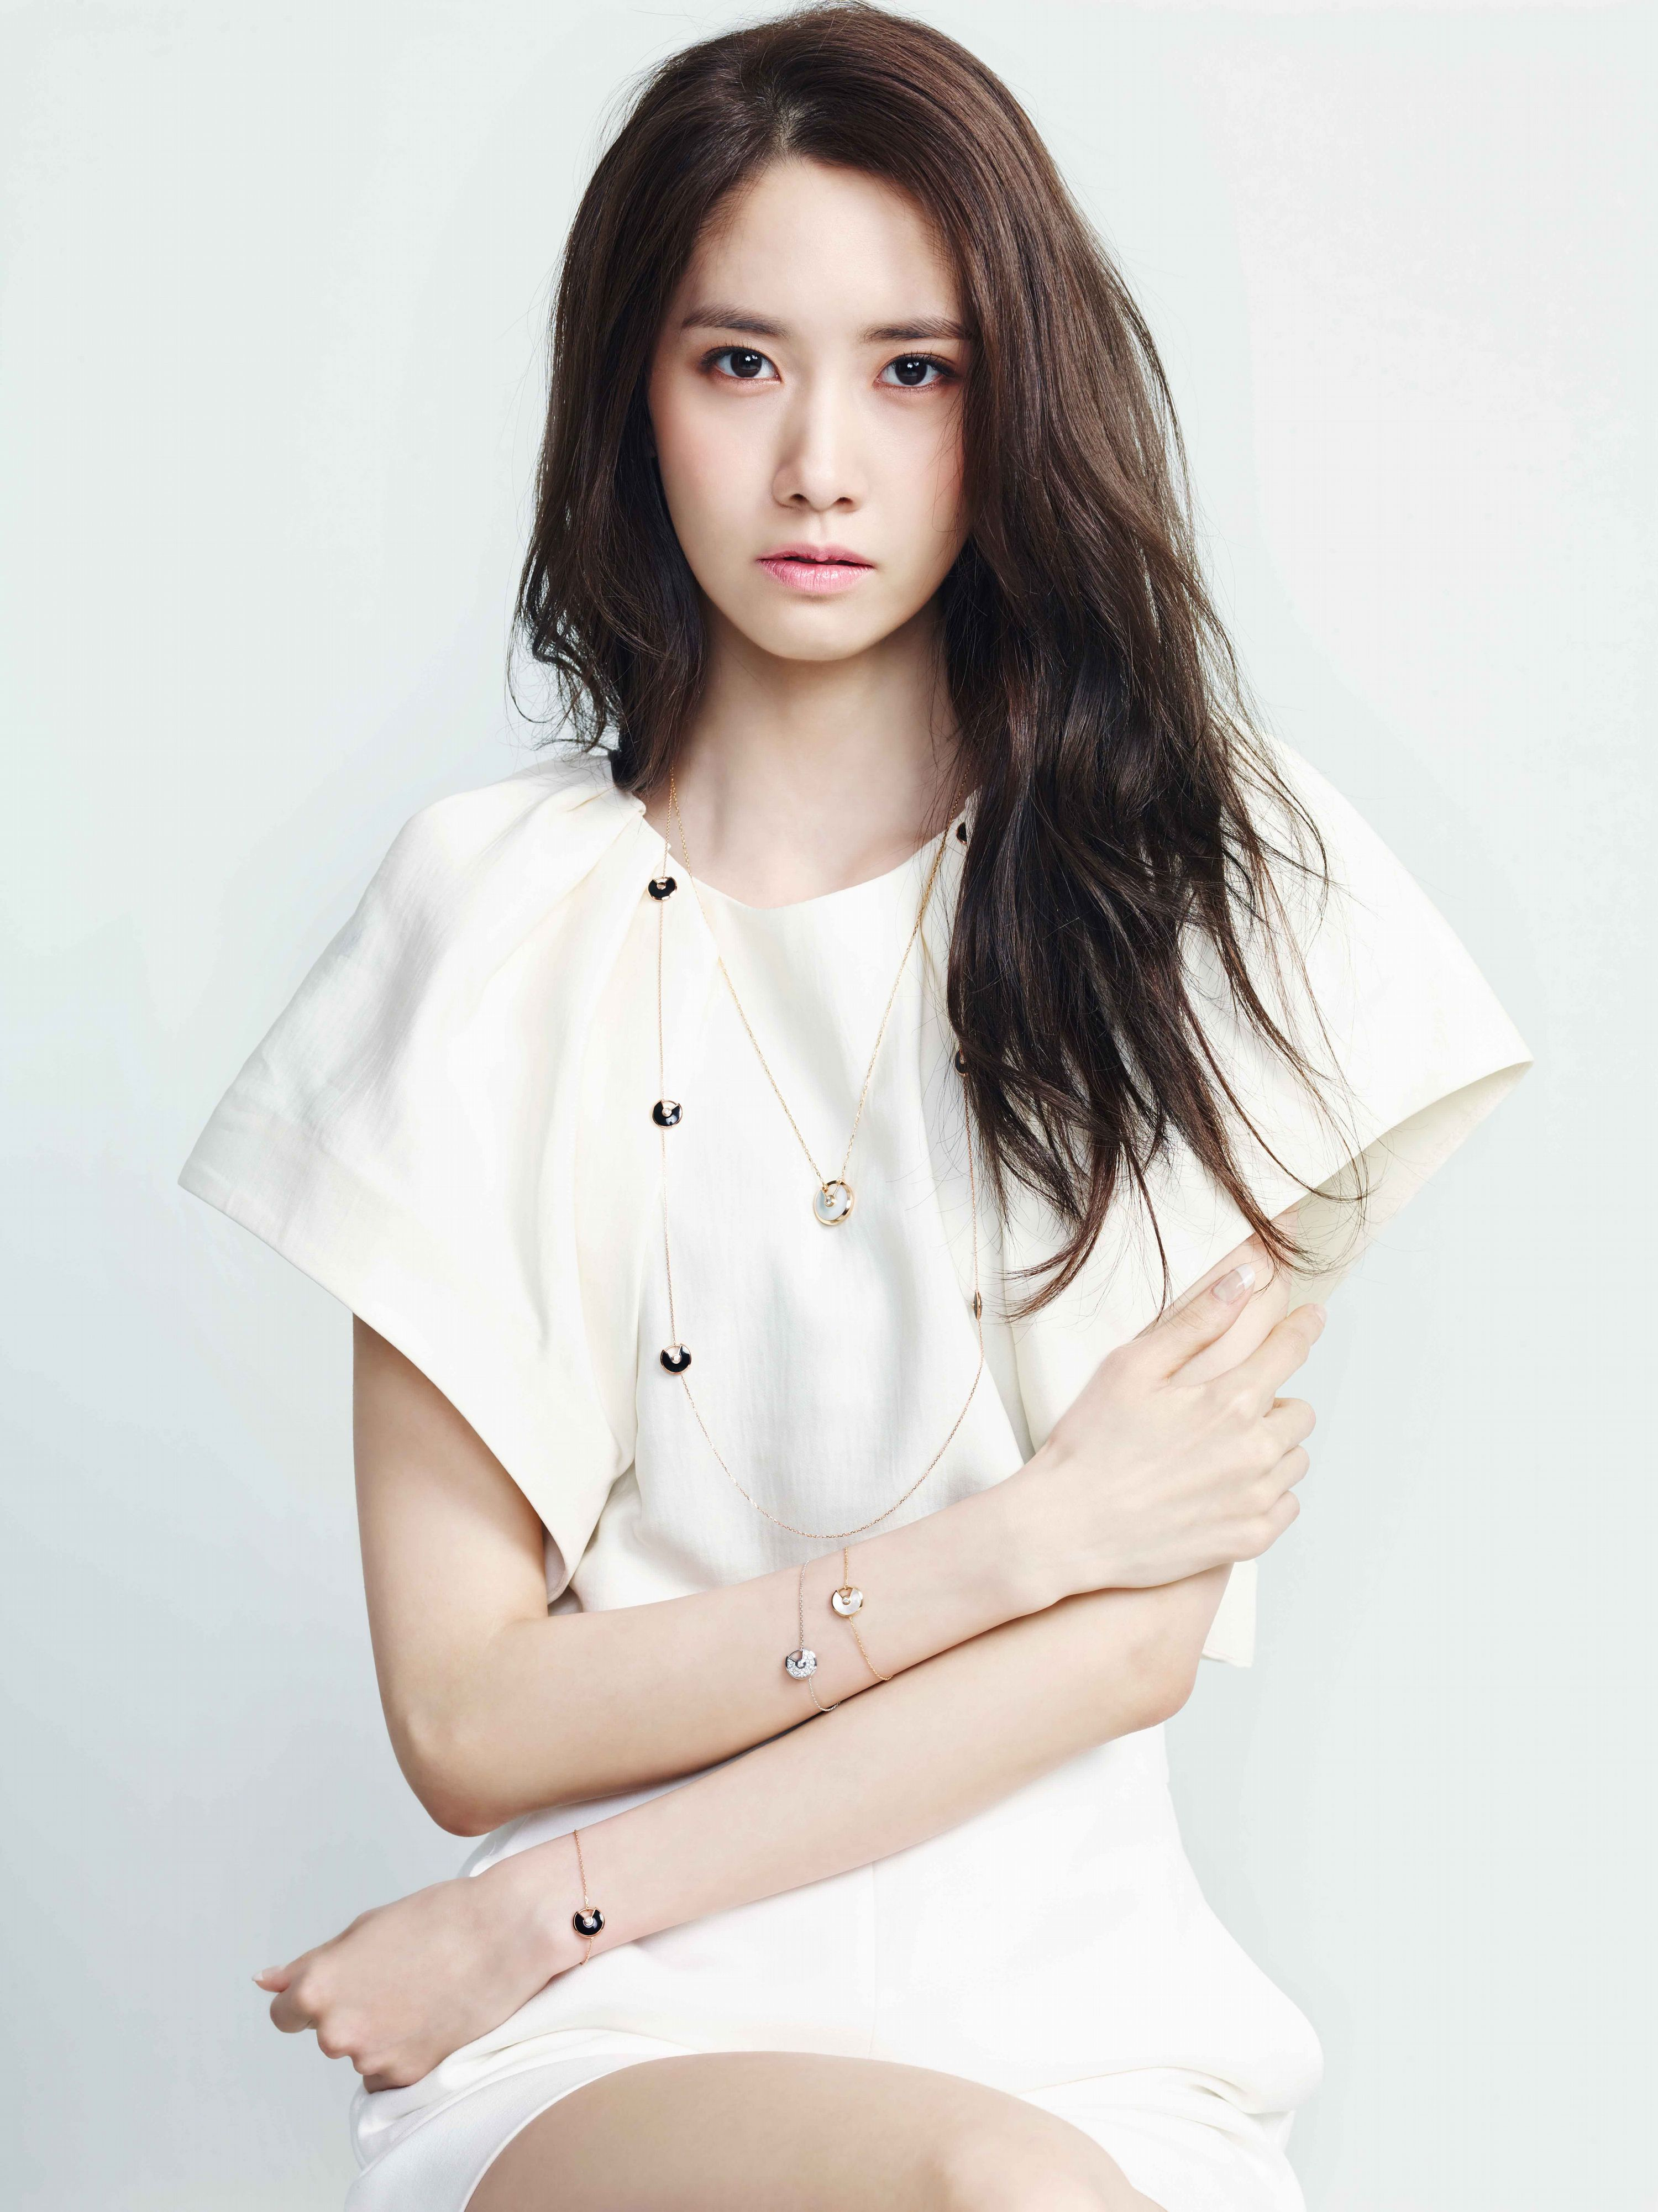 tags girls generation im yoona androidiphone wallpaper